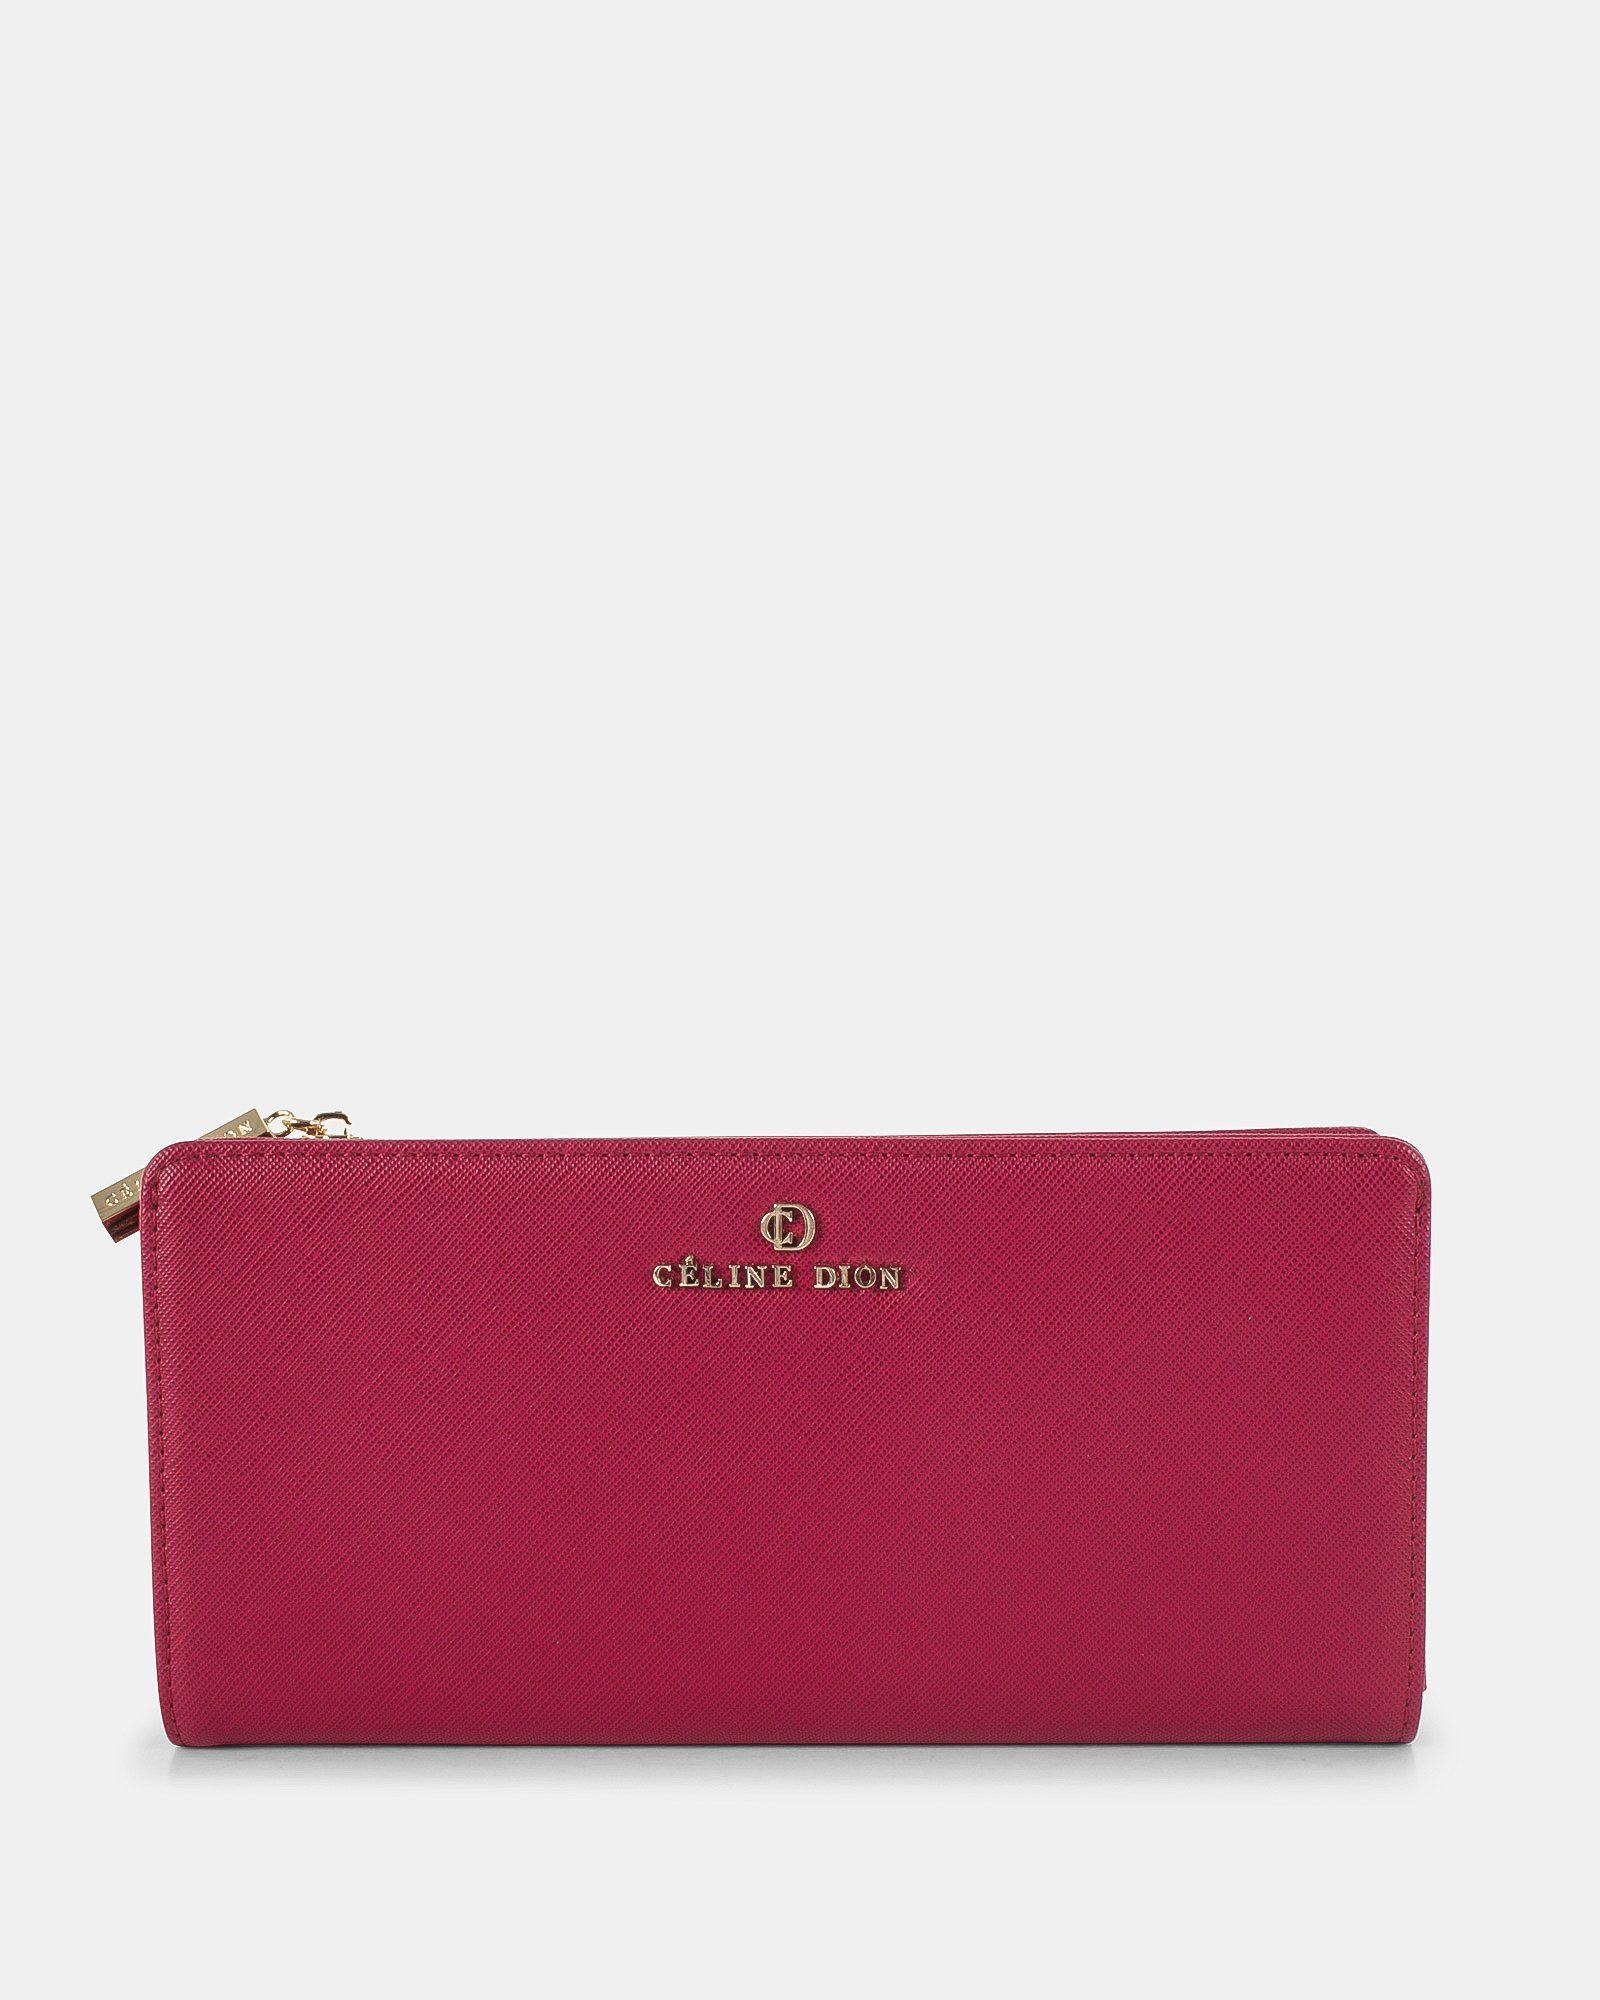 GRAZIOSO - Long wallet with zipped - Magenta - Céline Dion - Zoom